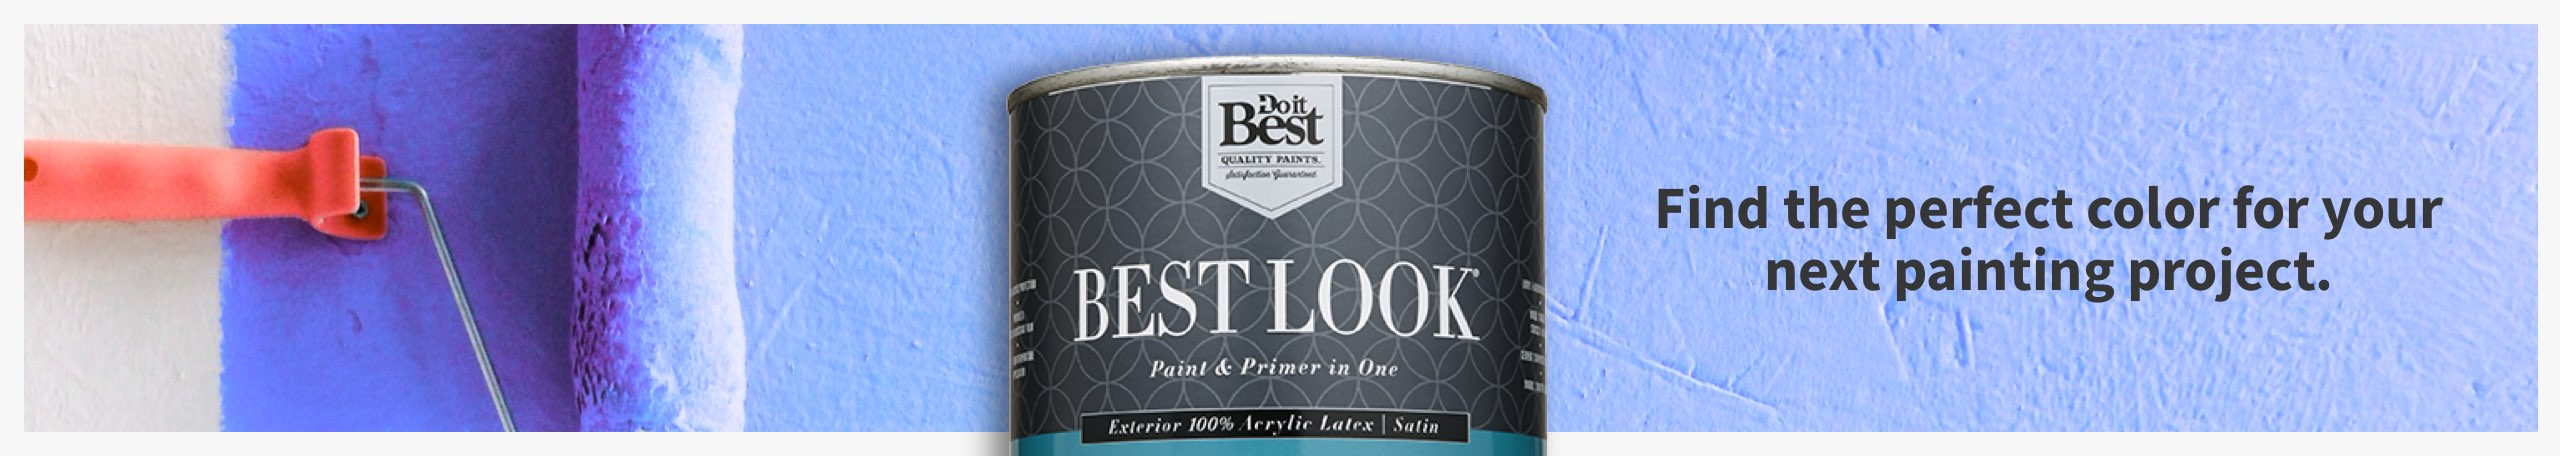 Shop Best Look paint from Beaumont Hardware